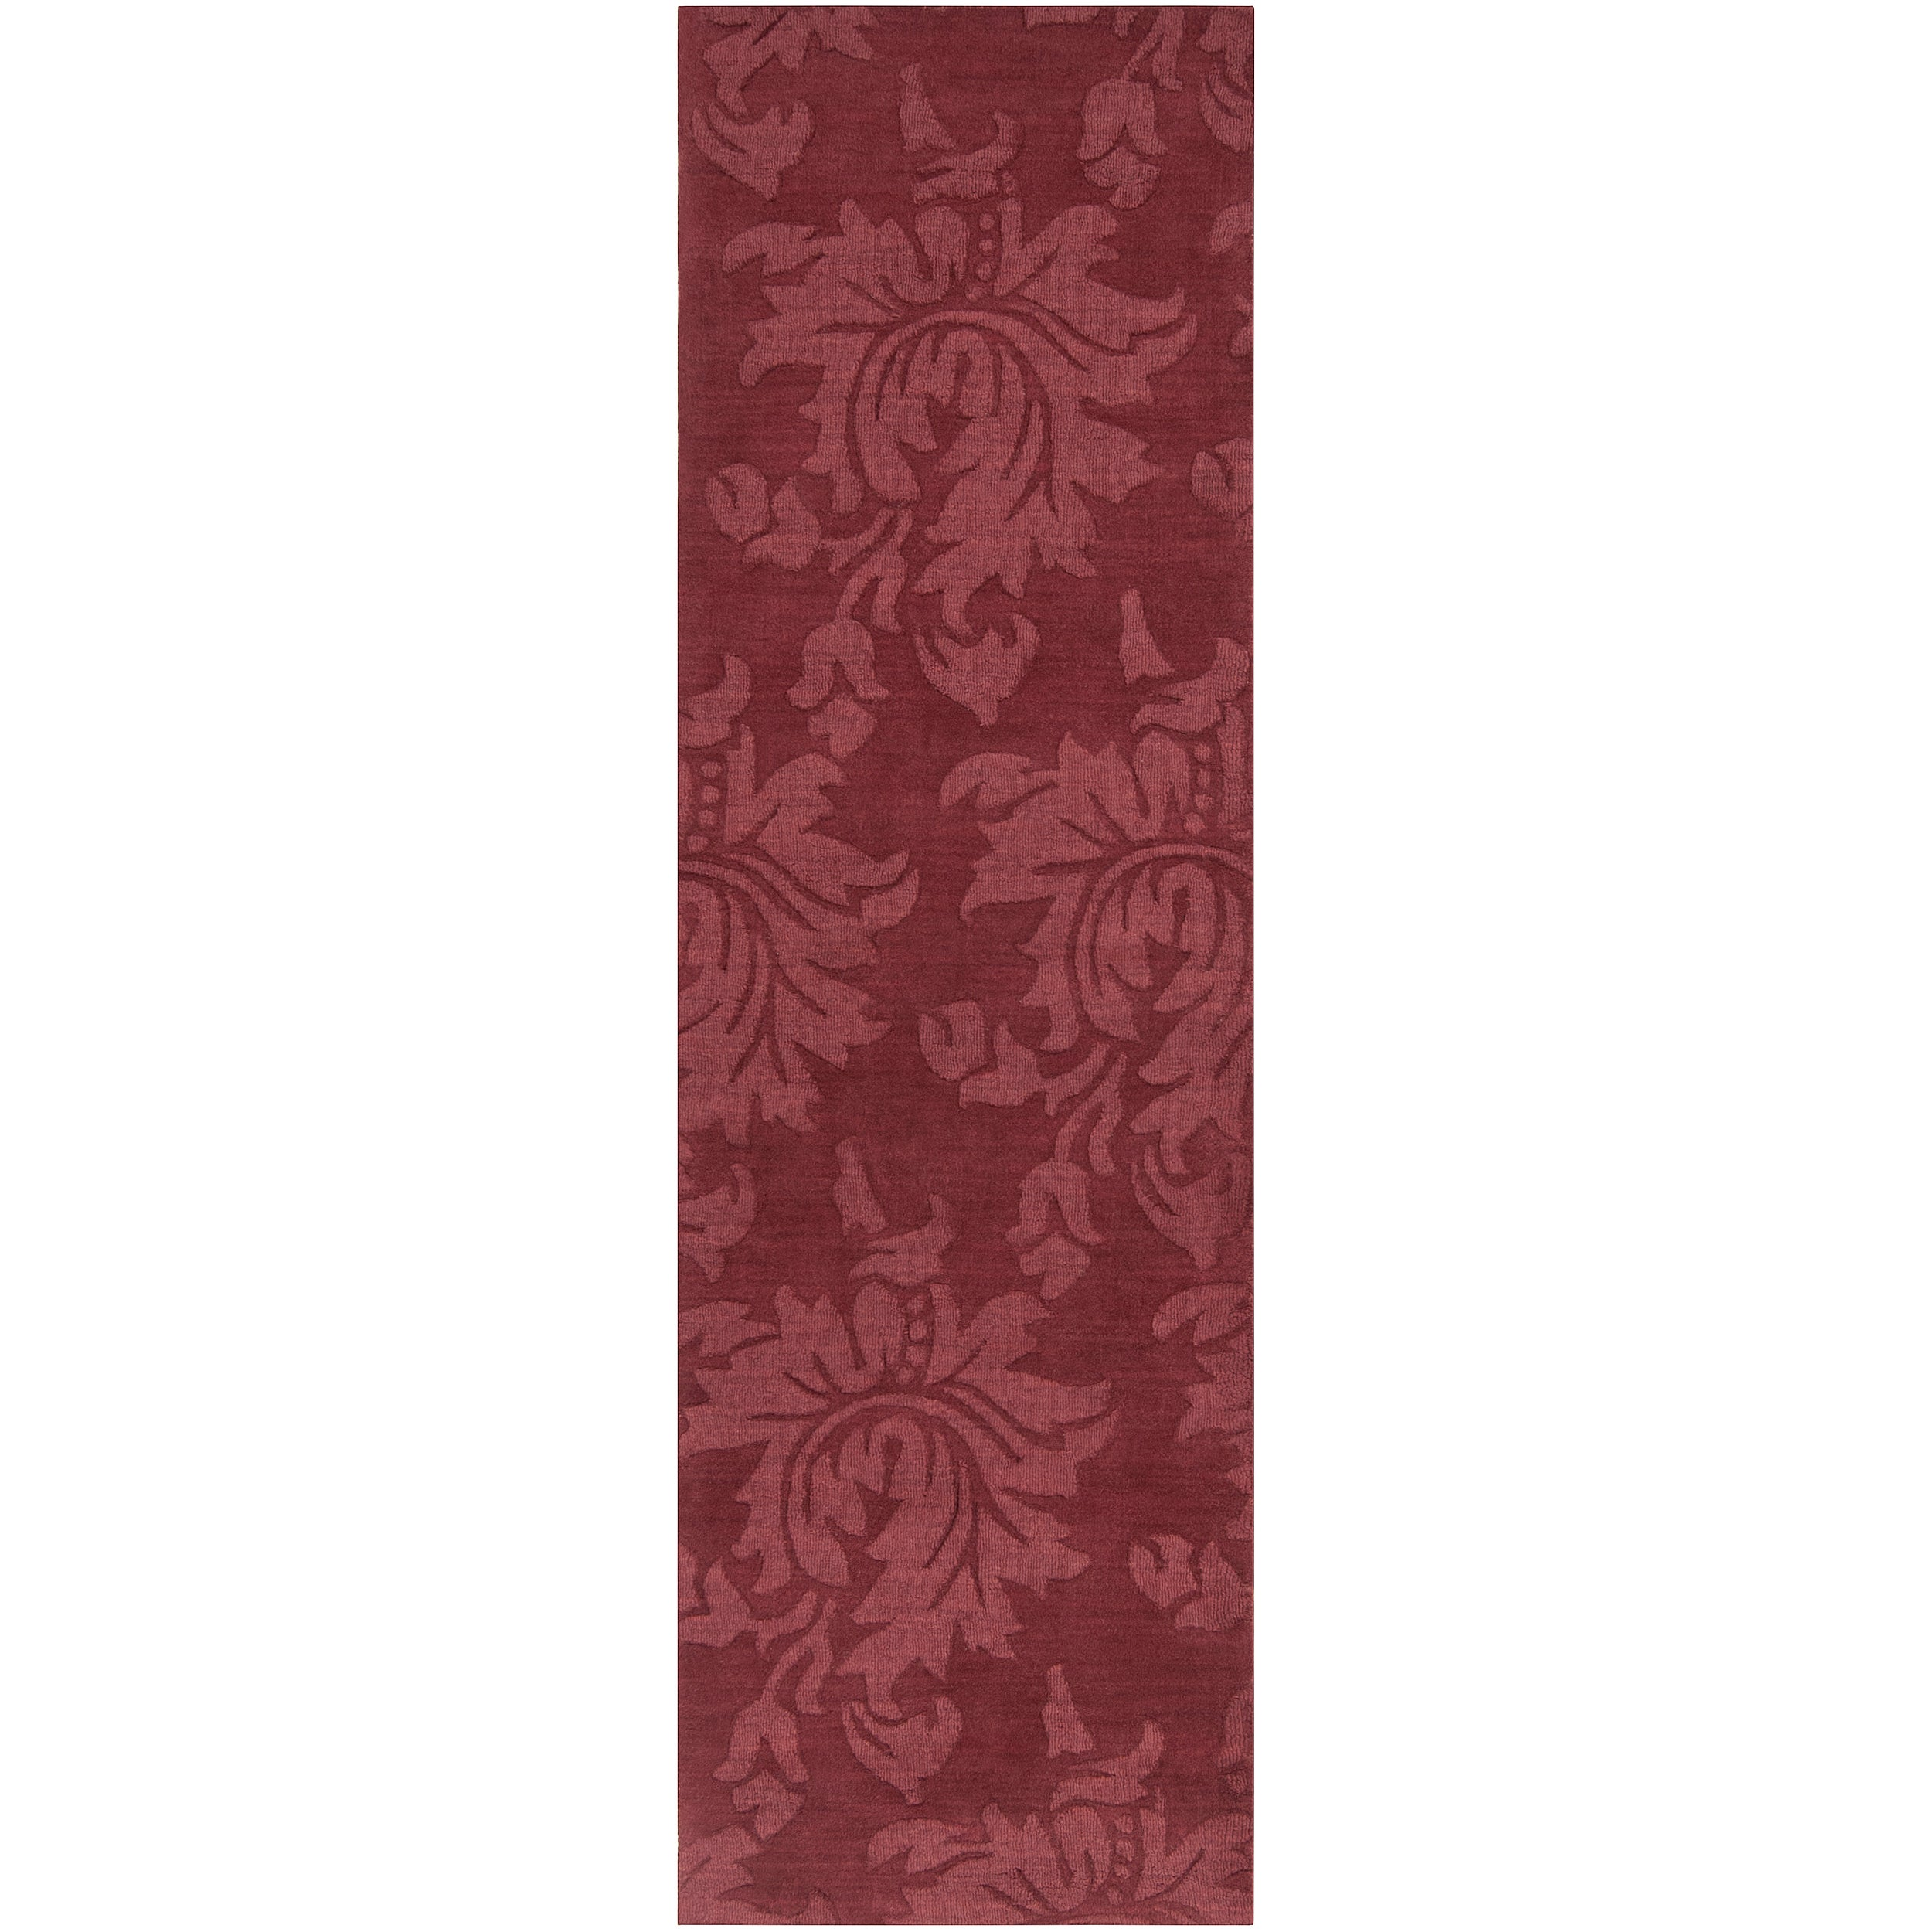 Hand-crafted Solid Red Damask Chrometo Wool Rug (2'6 x 8')